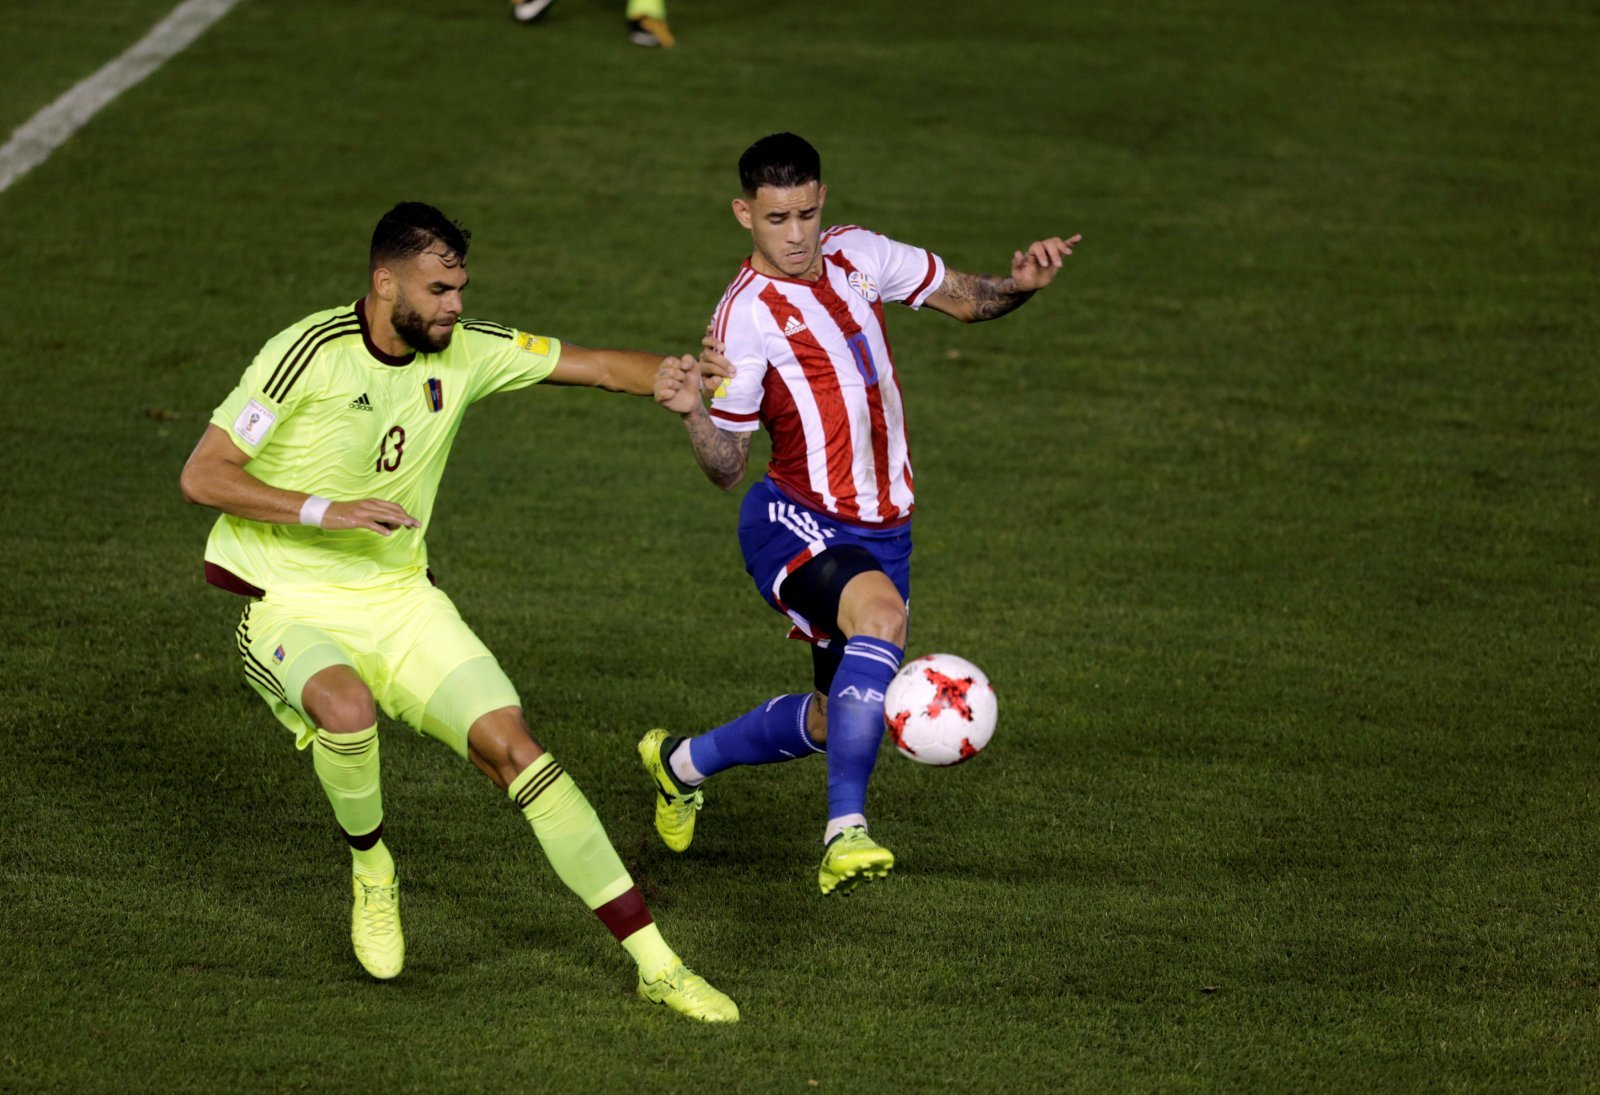 Signing Sanabria could provide Everton with further attacking quality